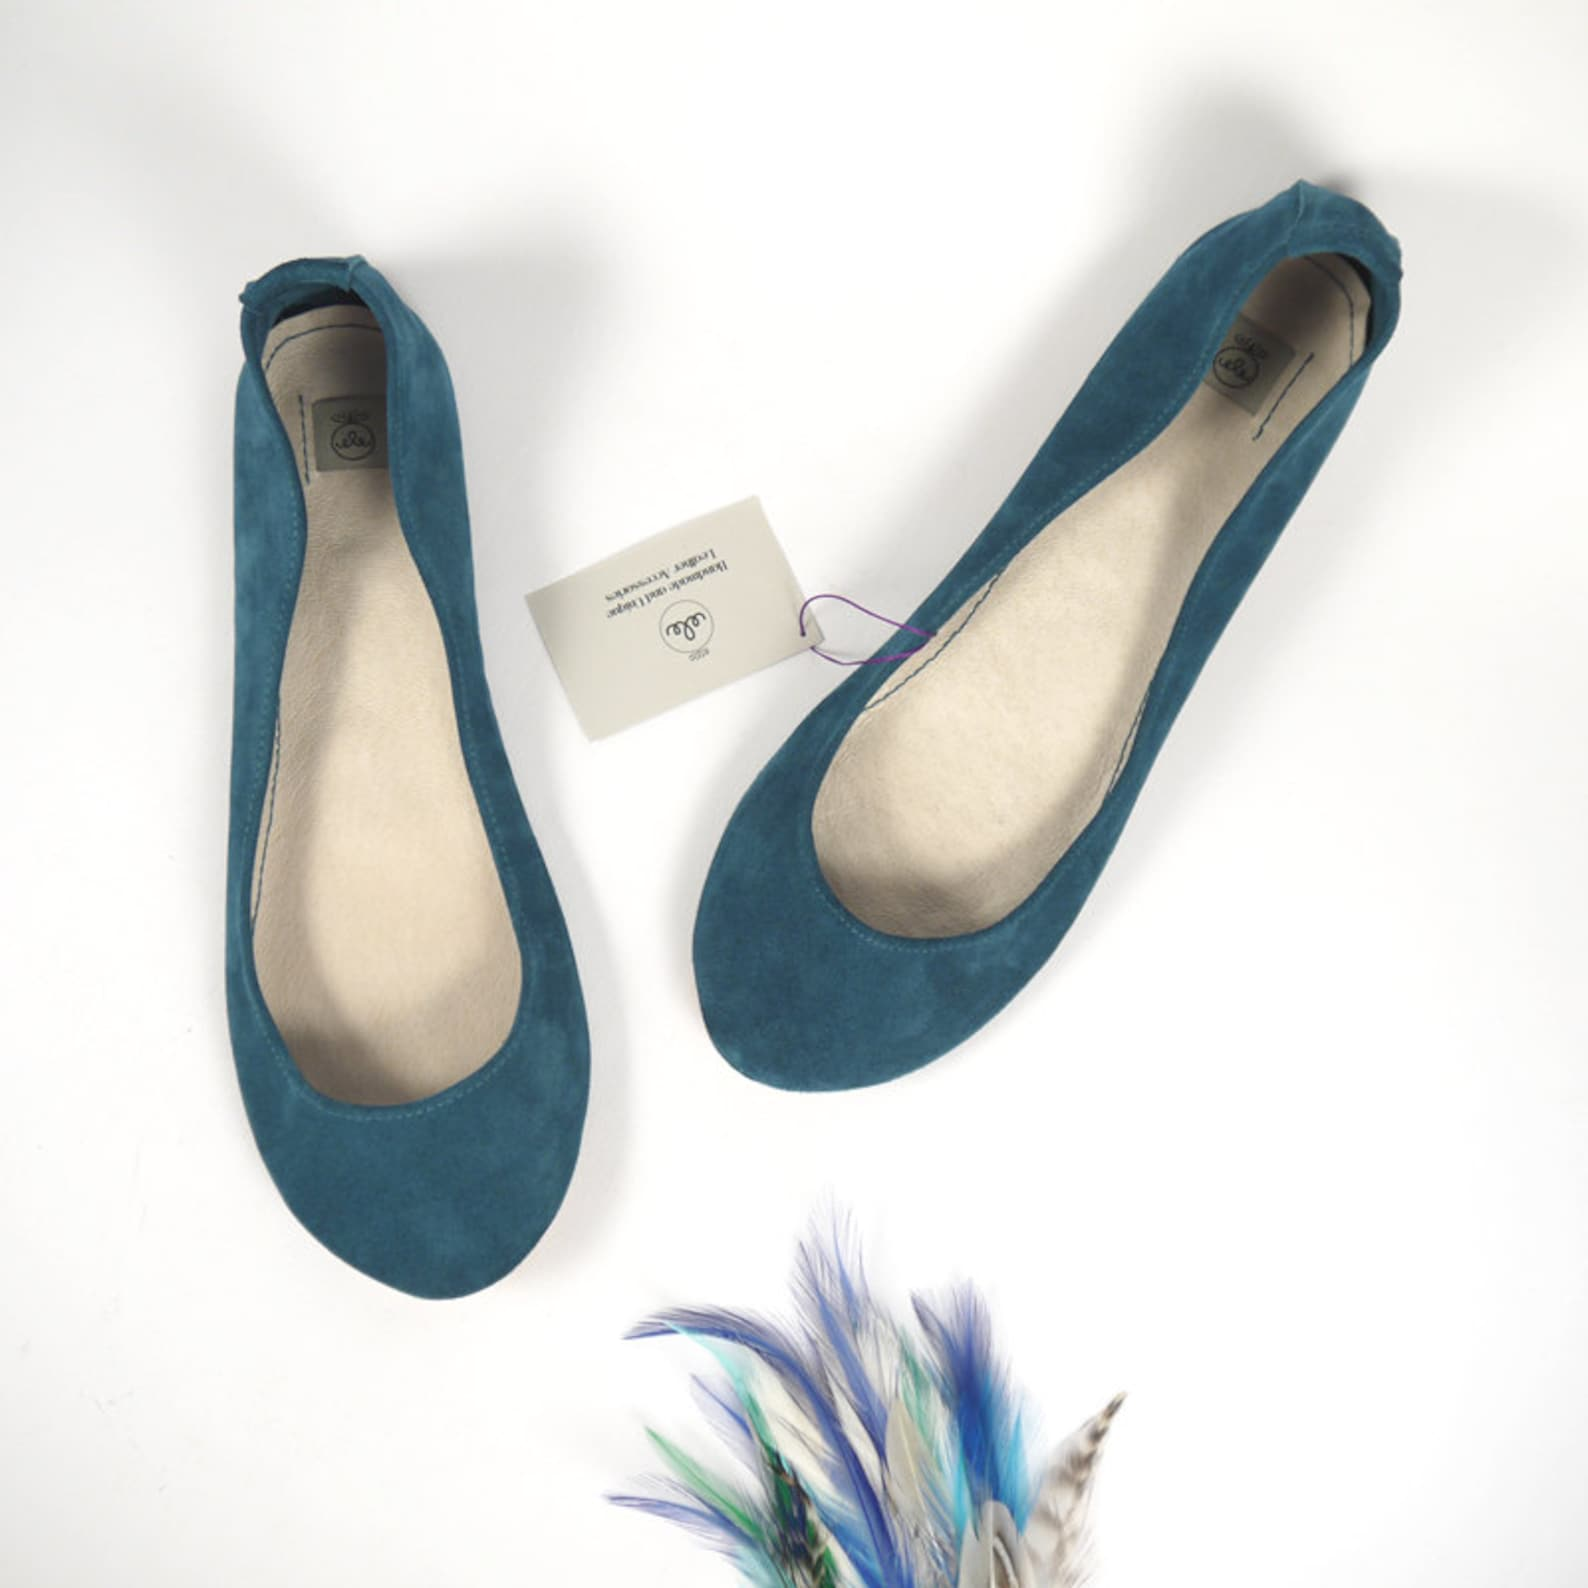 leather ballet flats. bridal shoes. women shoes. low heel wedding shoes. teal flats. italian leather shoe. bridal gift. bridesma